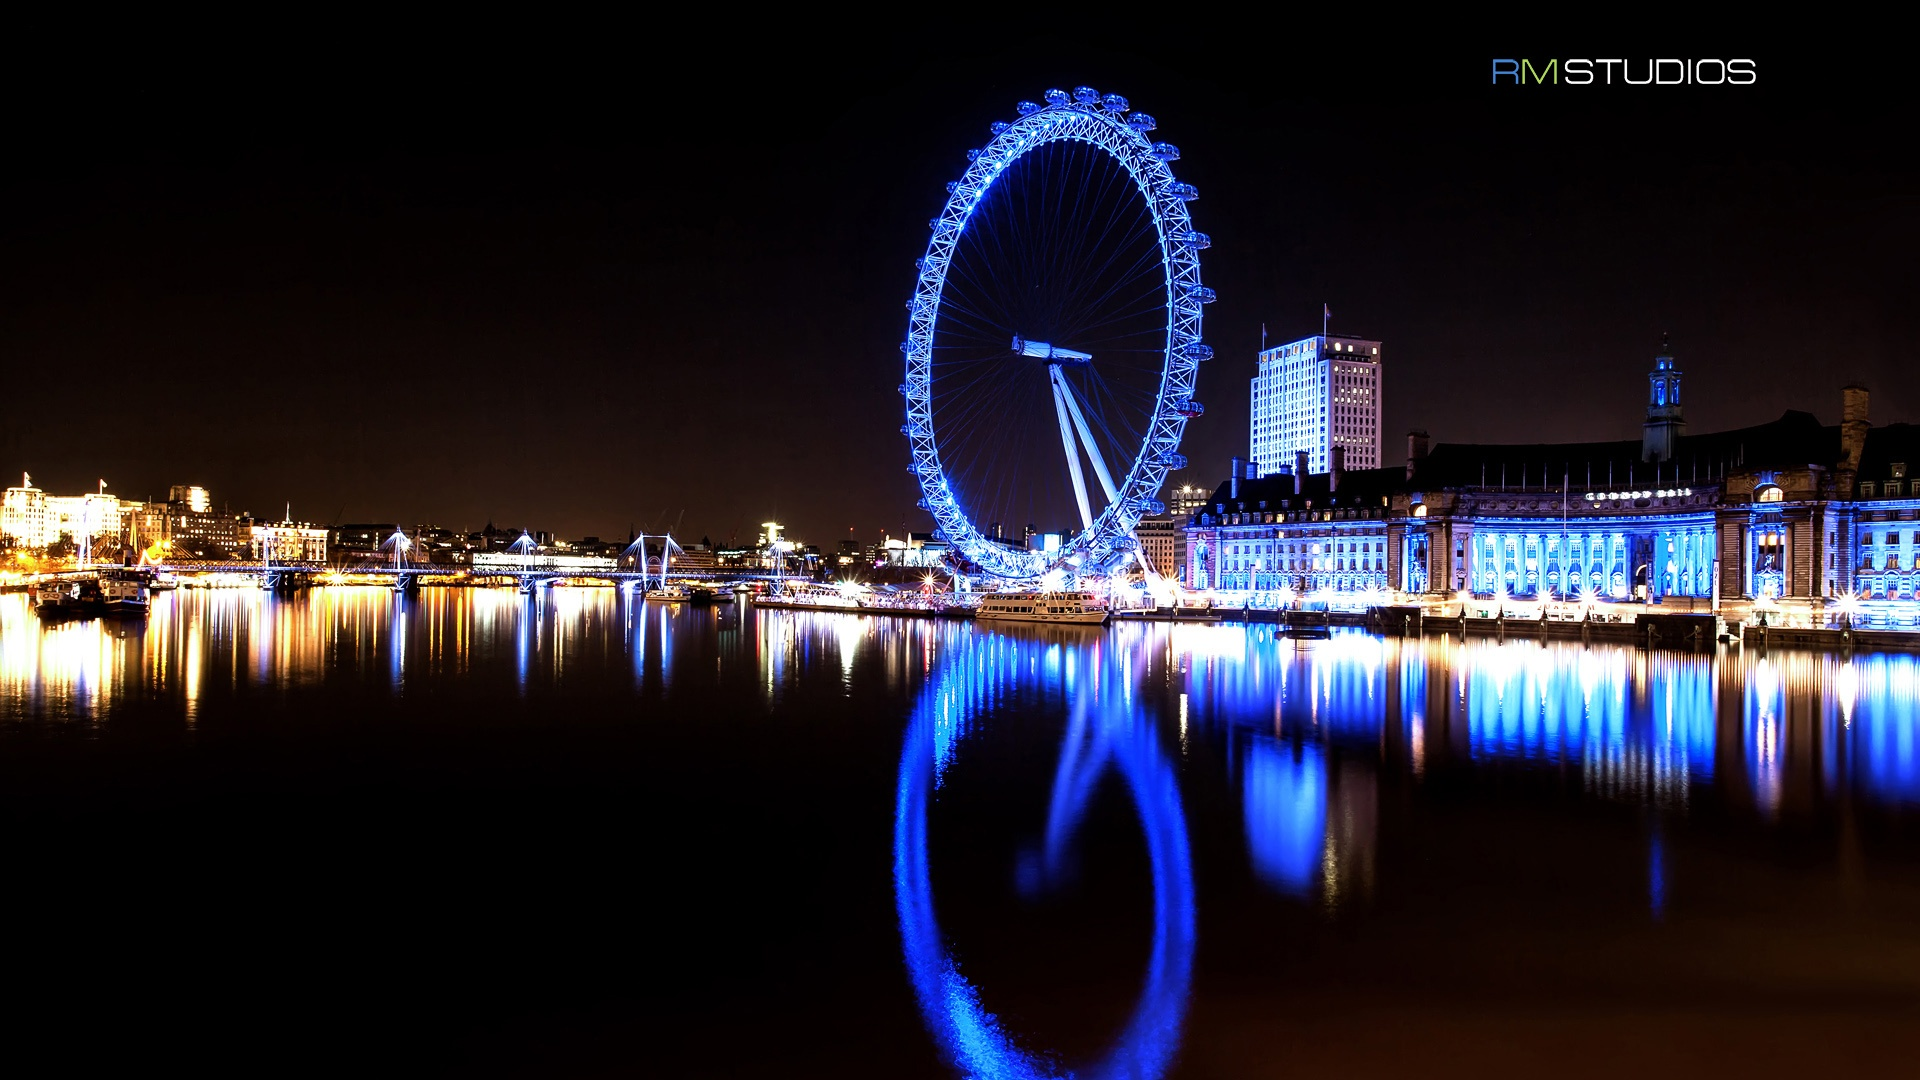 London eye river thames   1920x1080 1920x1080